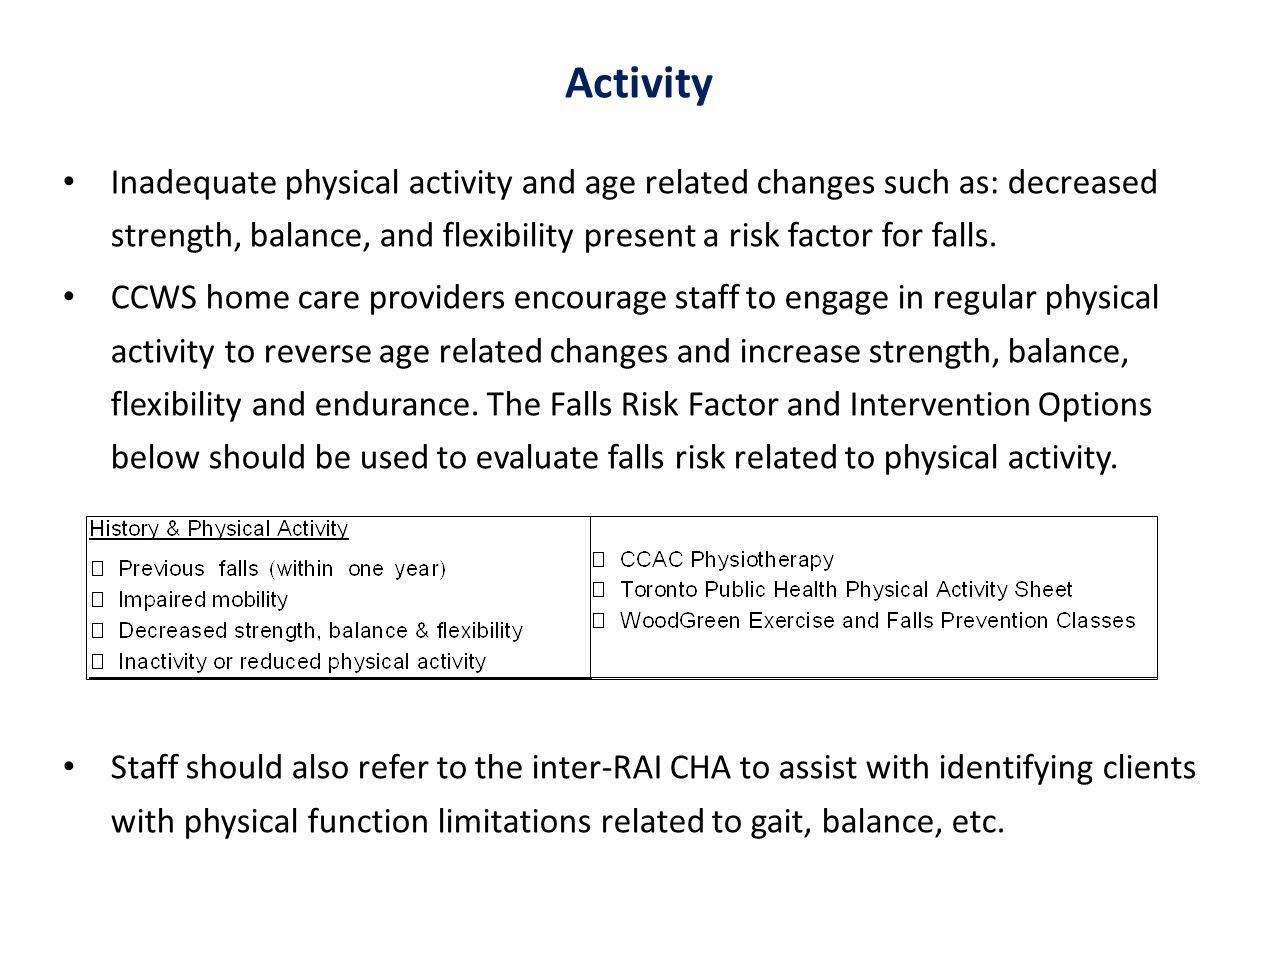 Activity Inadequate physical activity and age related changes such as: decreased strength, balance, and flexibility present a risk factor for falls.